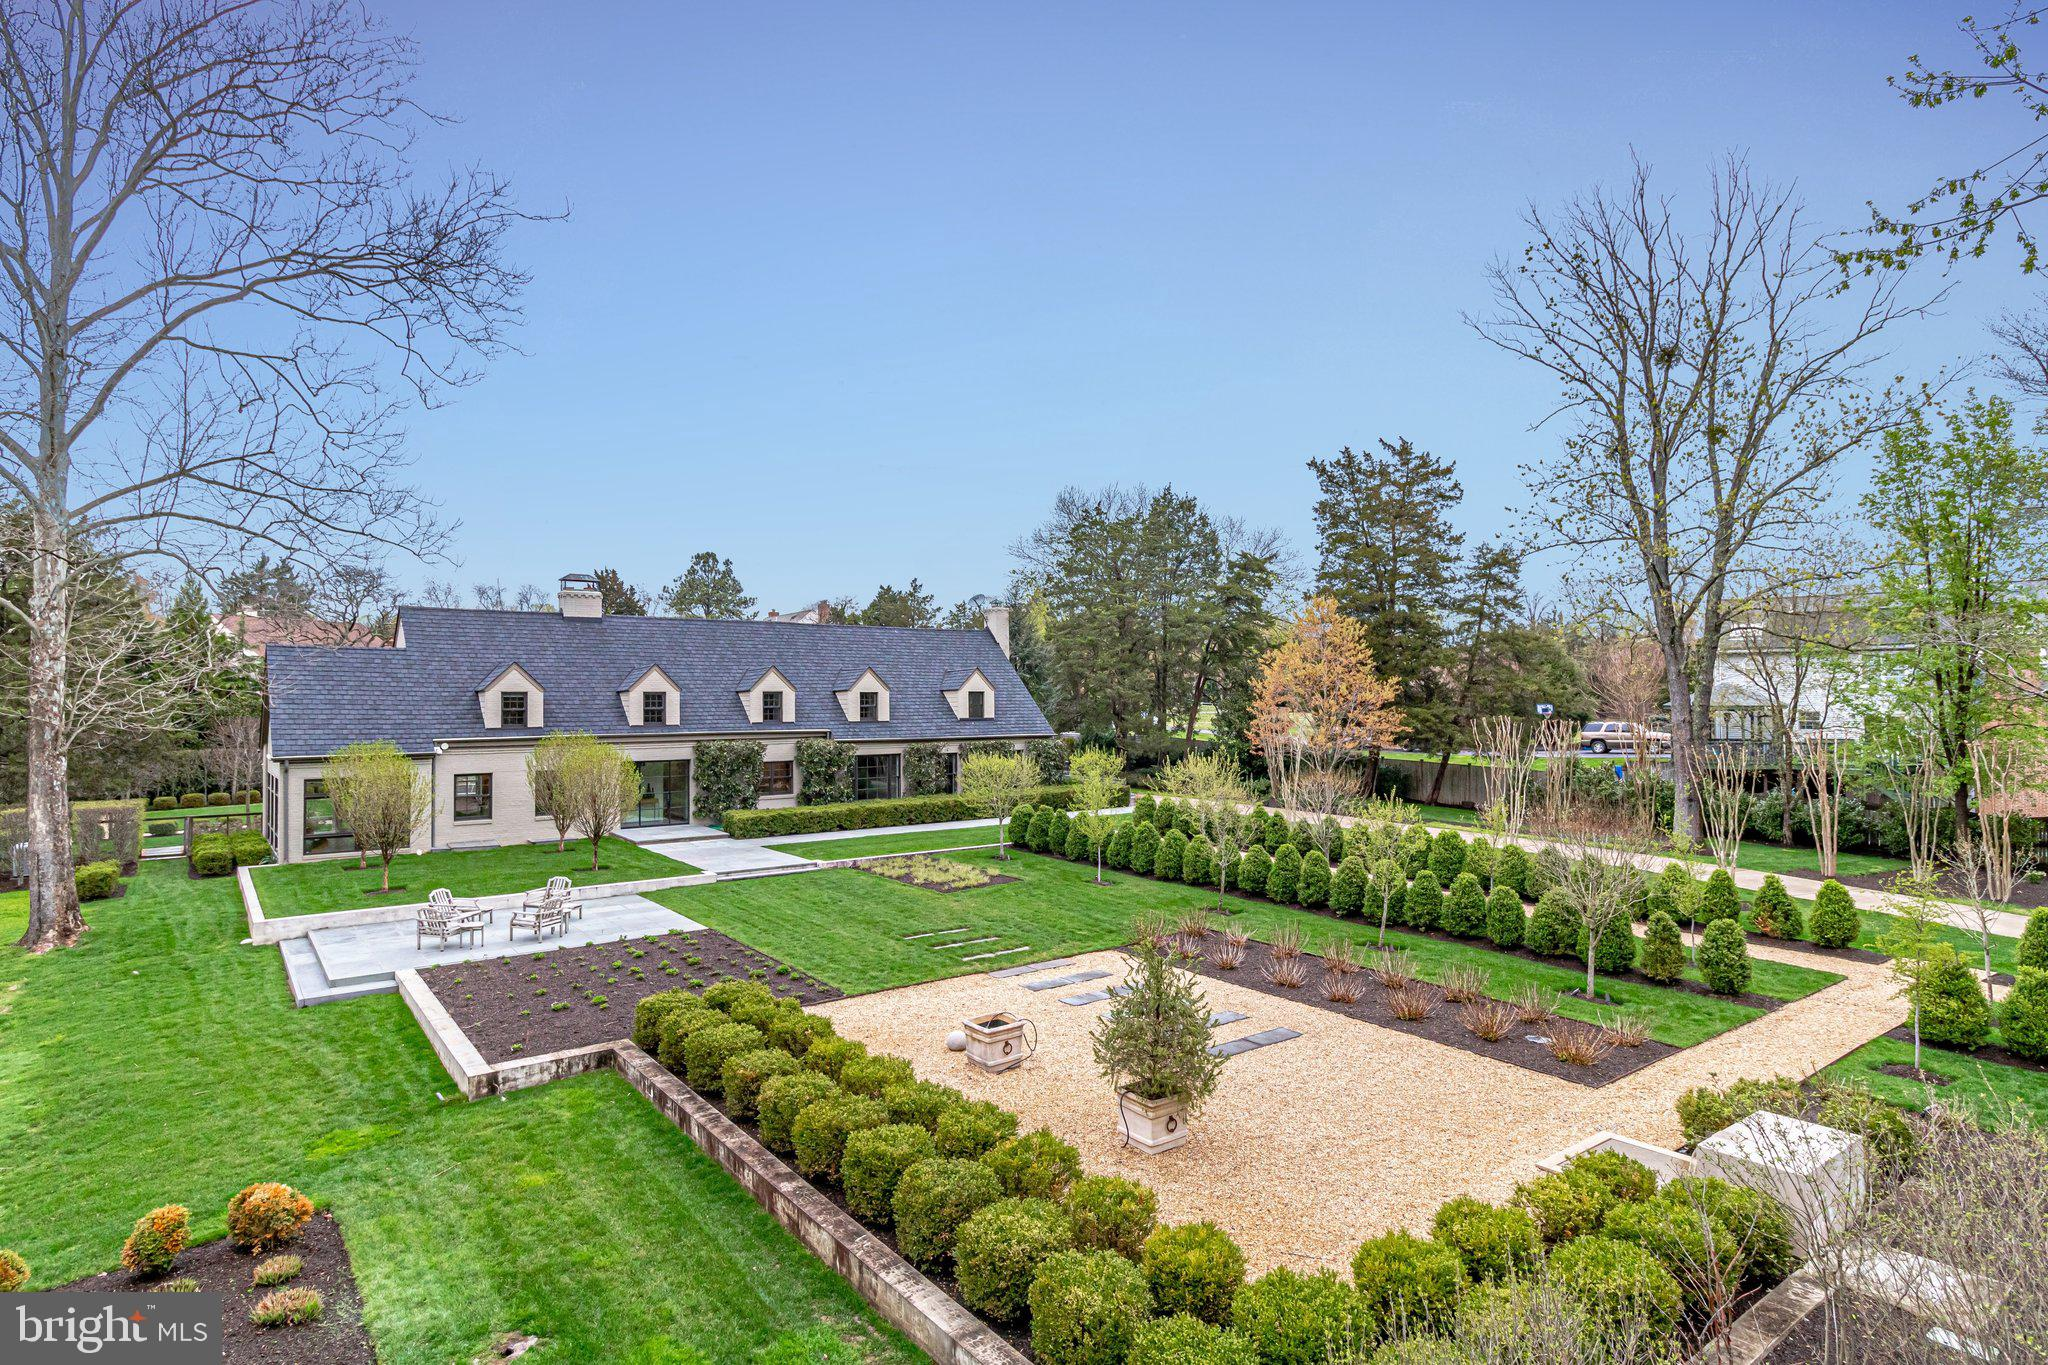 Pristine, private & meticulously maintained SFH with curated grounds & gardens designed by Katia Gof